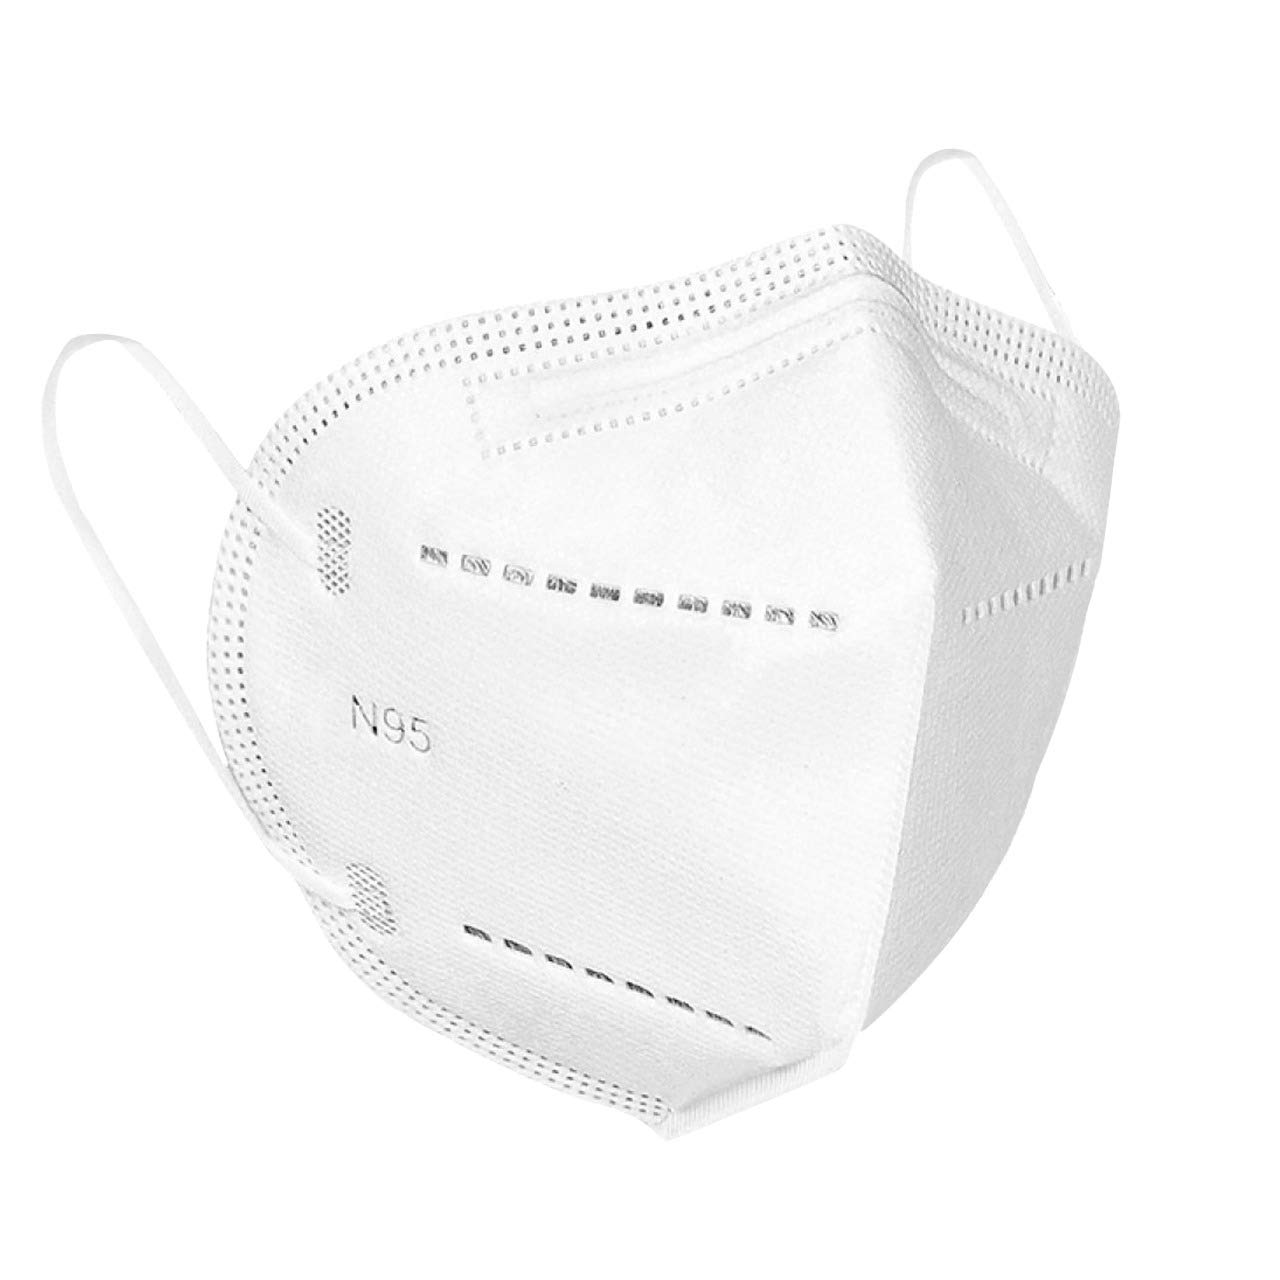 Pack of 10 KN-95/N95 mask